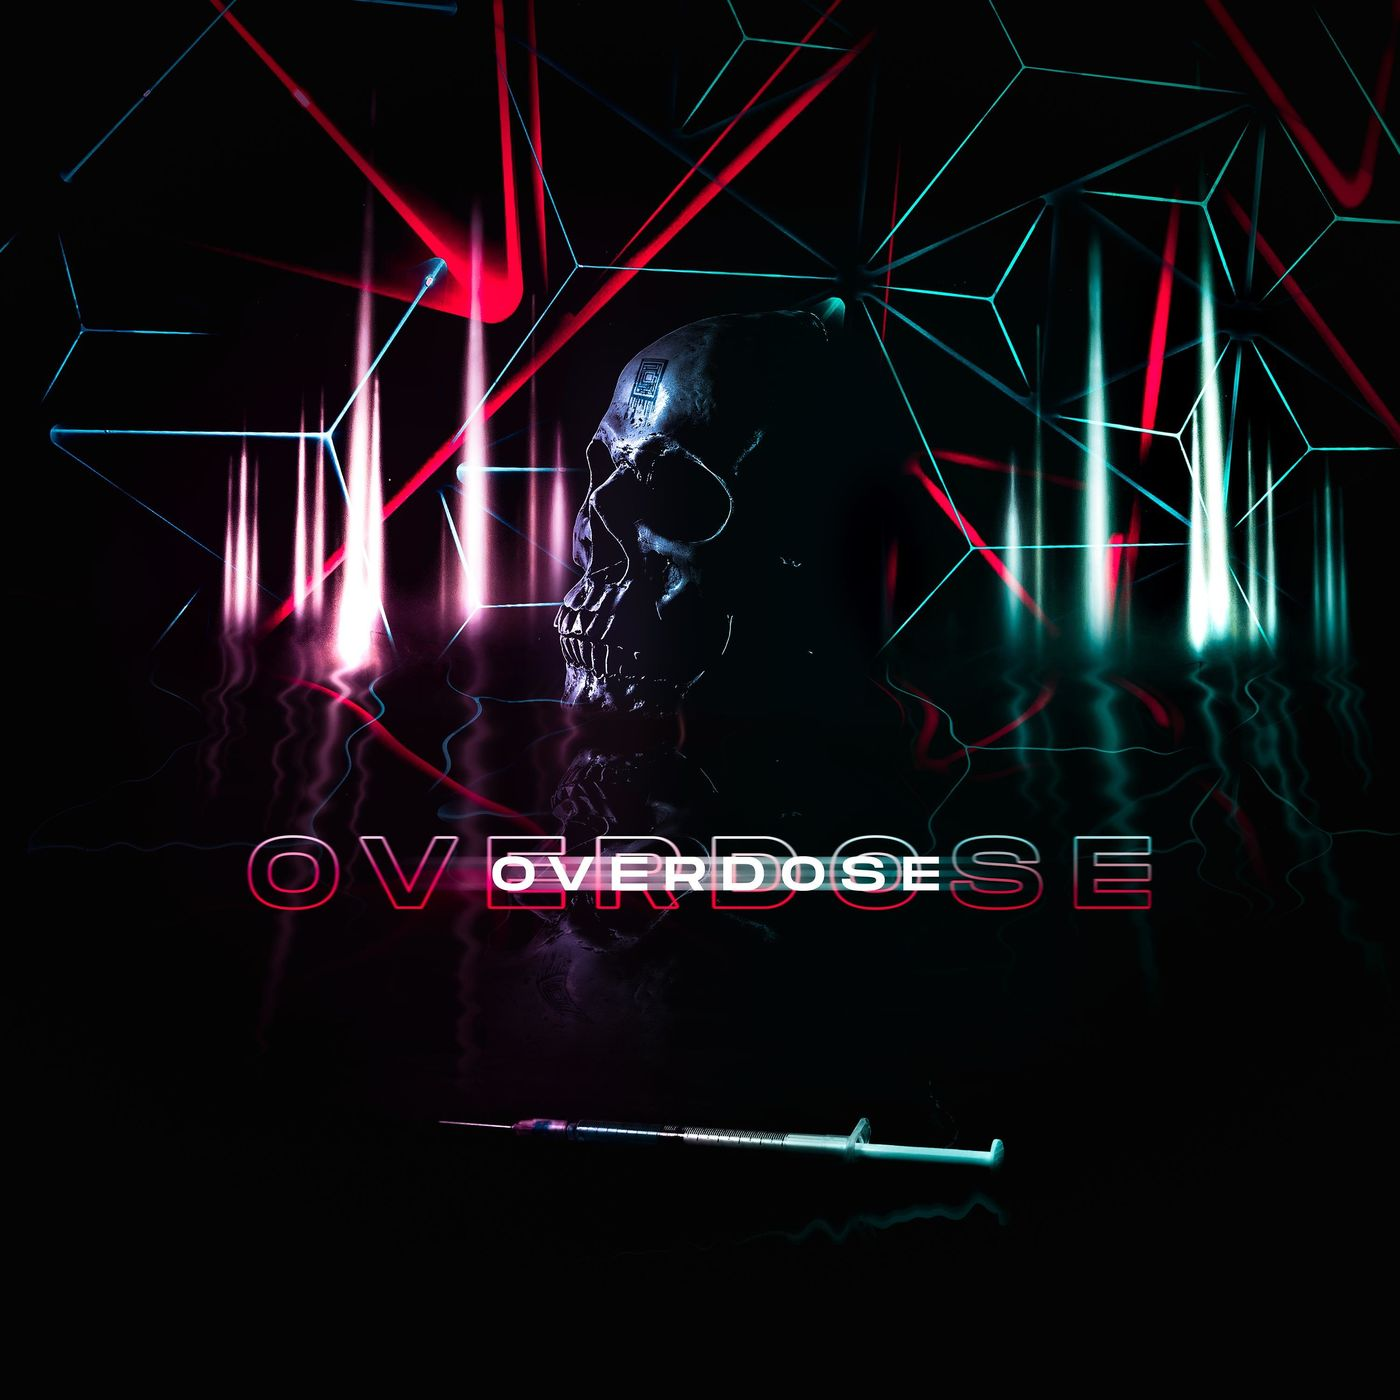 Coldharbour - Overdose [single] (2020)